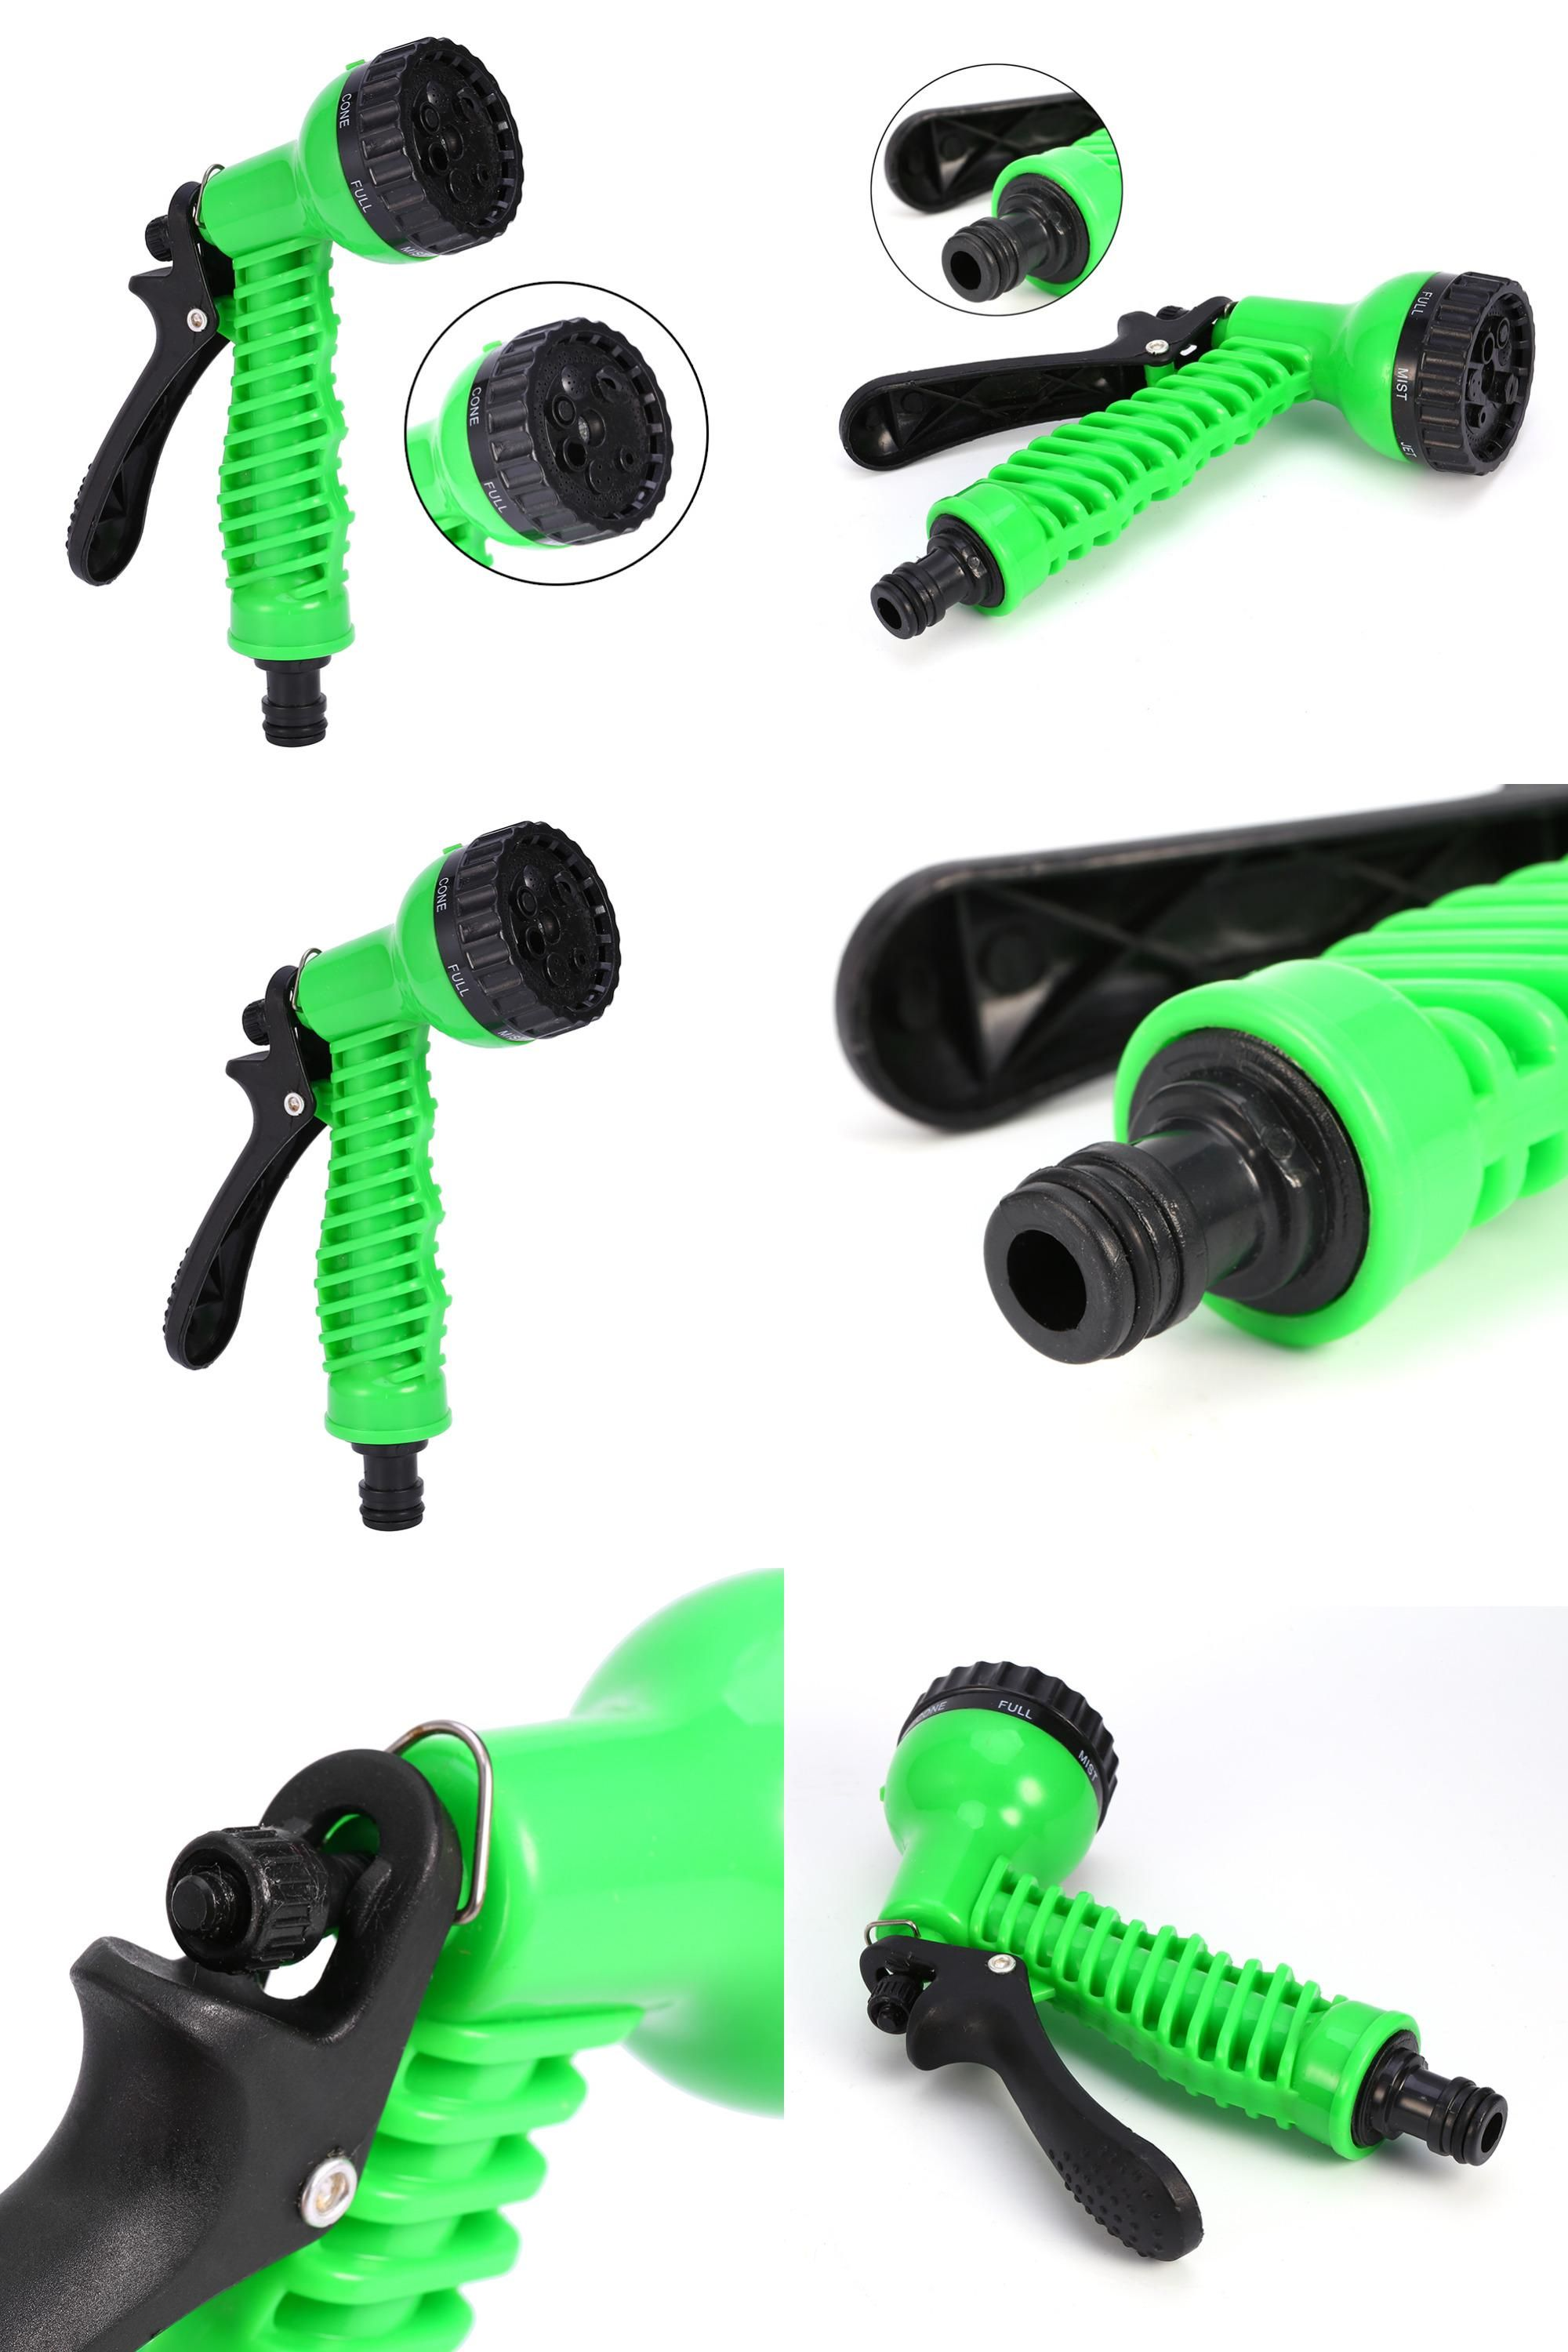 7 Functions High Pressure Garden Water Gun Garden Spray Irrigation Watering Spray Gun Car Wash Tools Fogging Nozzles Sprinkler Garden Water Guns